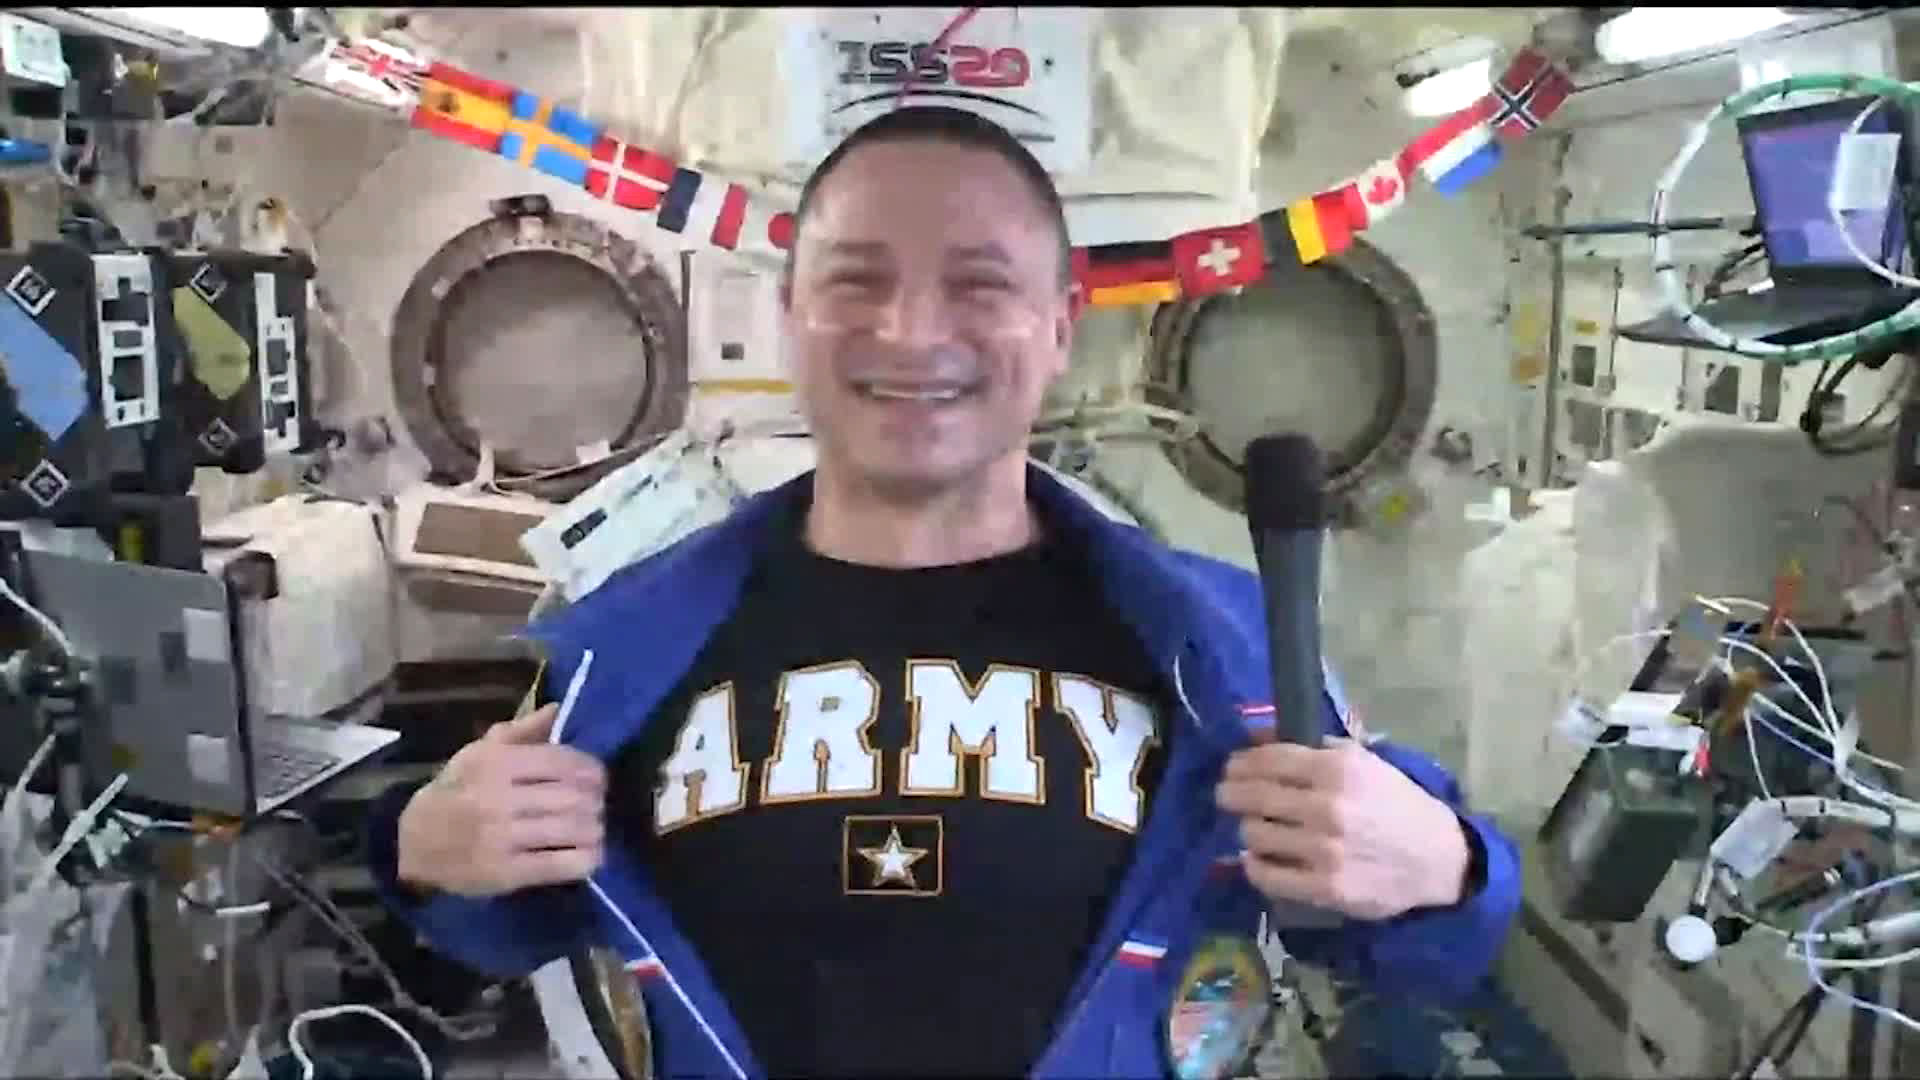 Andrew Morgan shows future recruits his Army pride underneath his space suit. (U.S. Army)